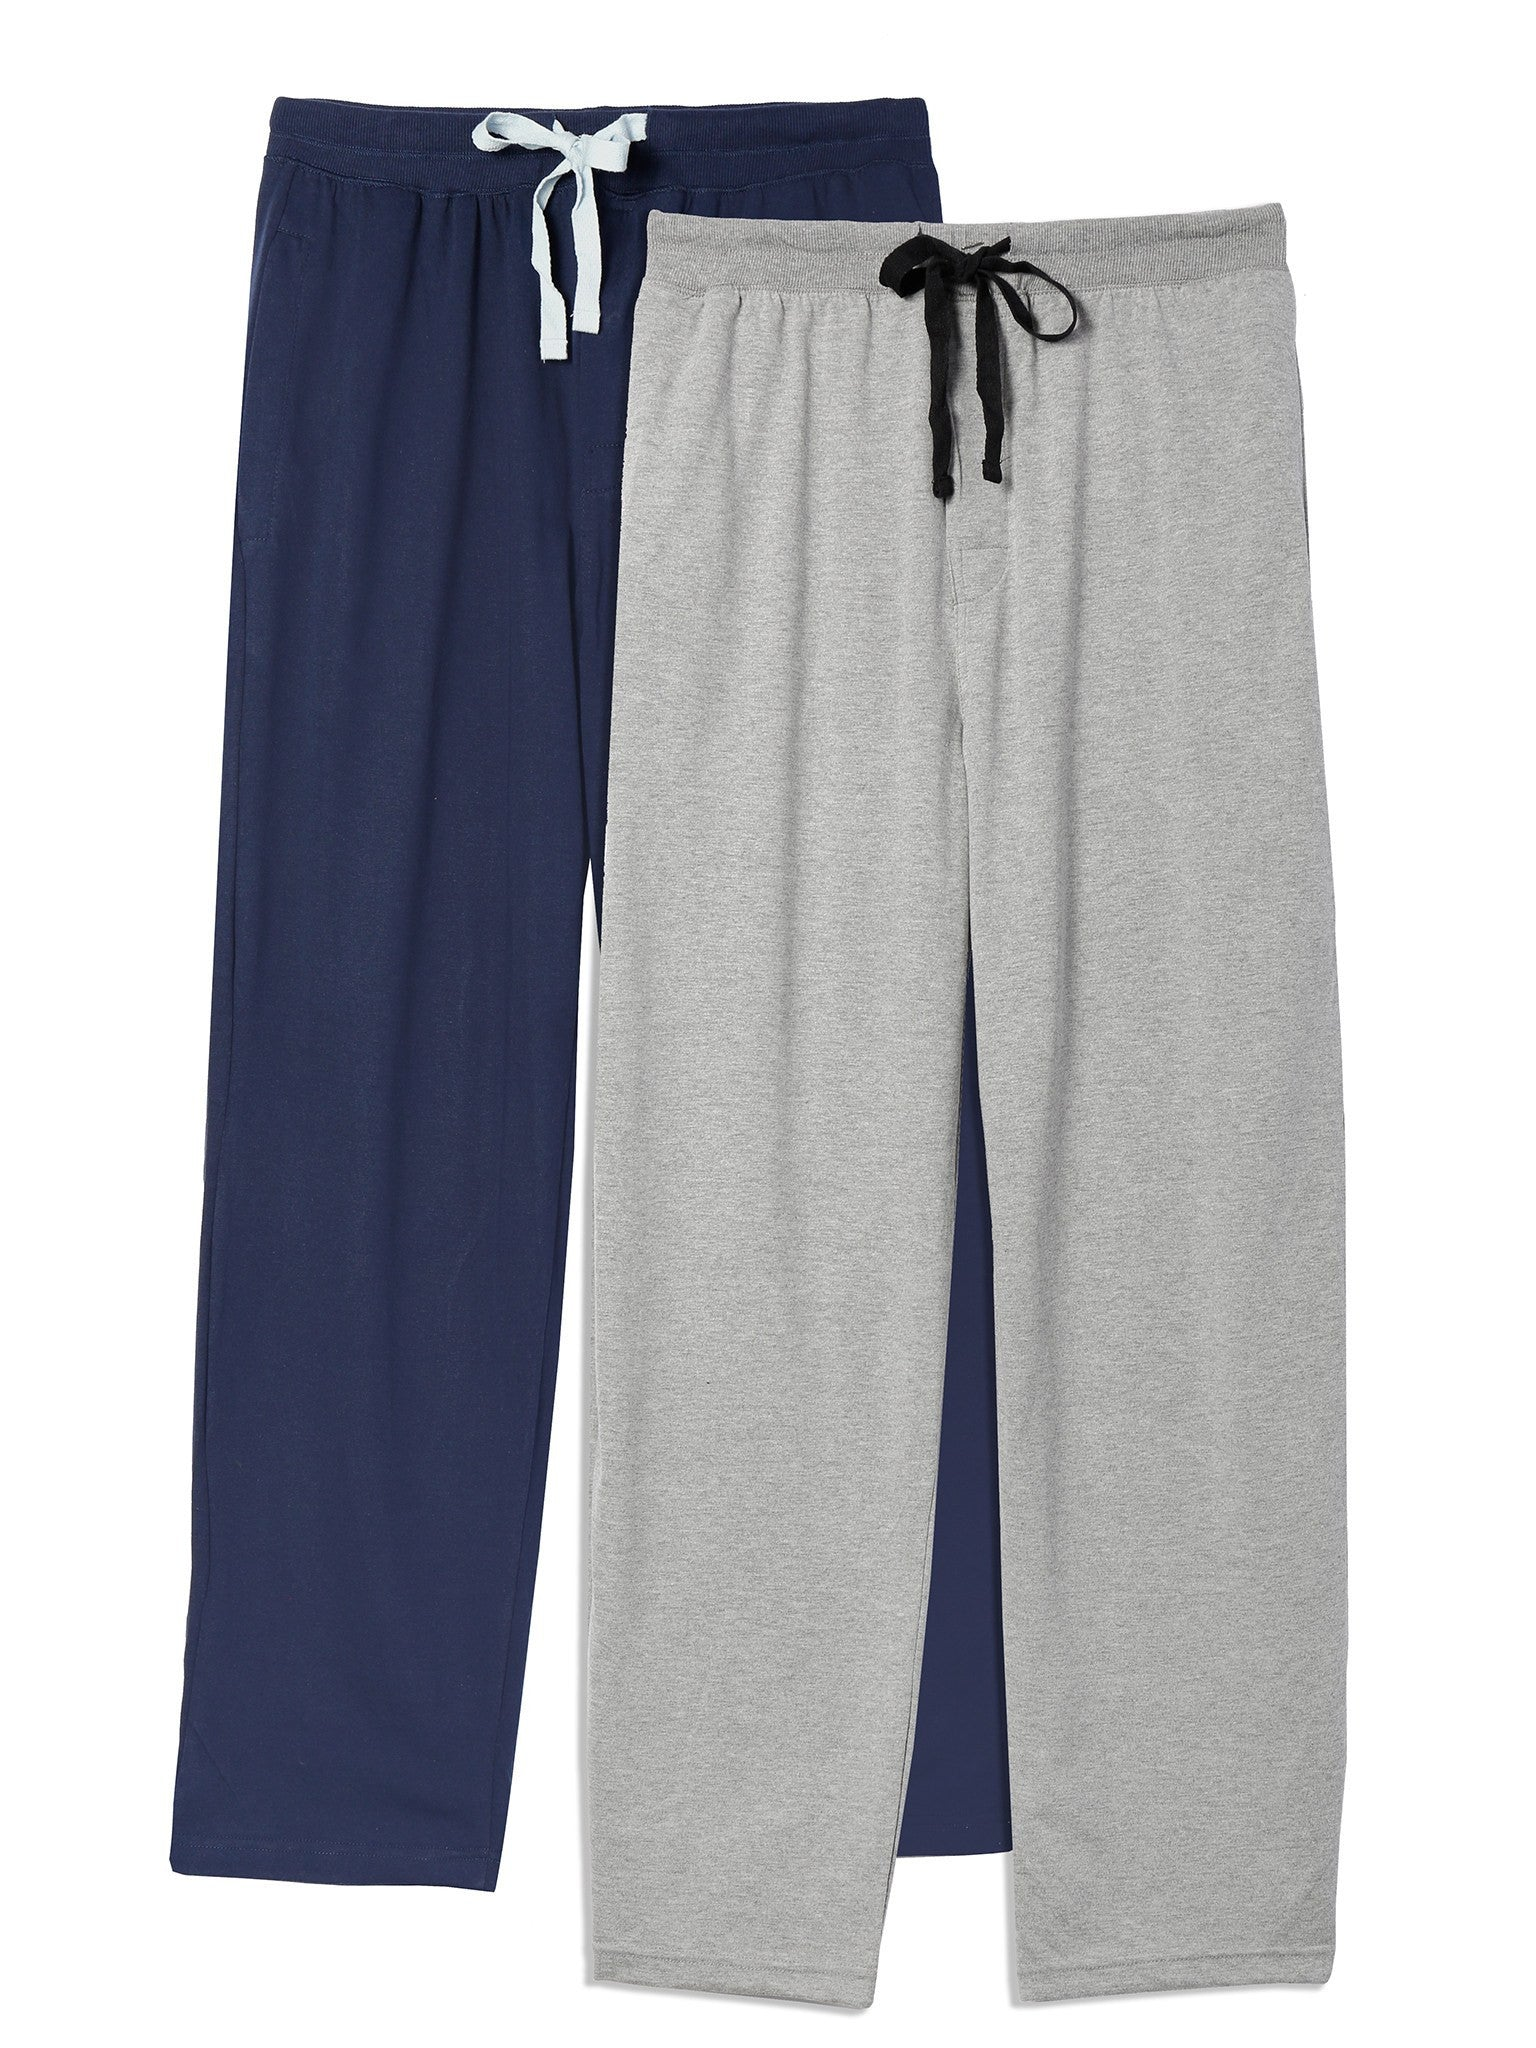 Men's 2-Pack Premium Knit Sleep/Lounge Pants